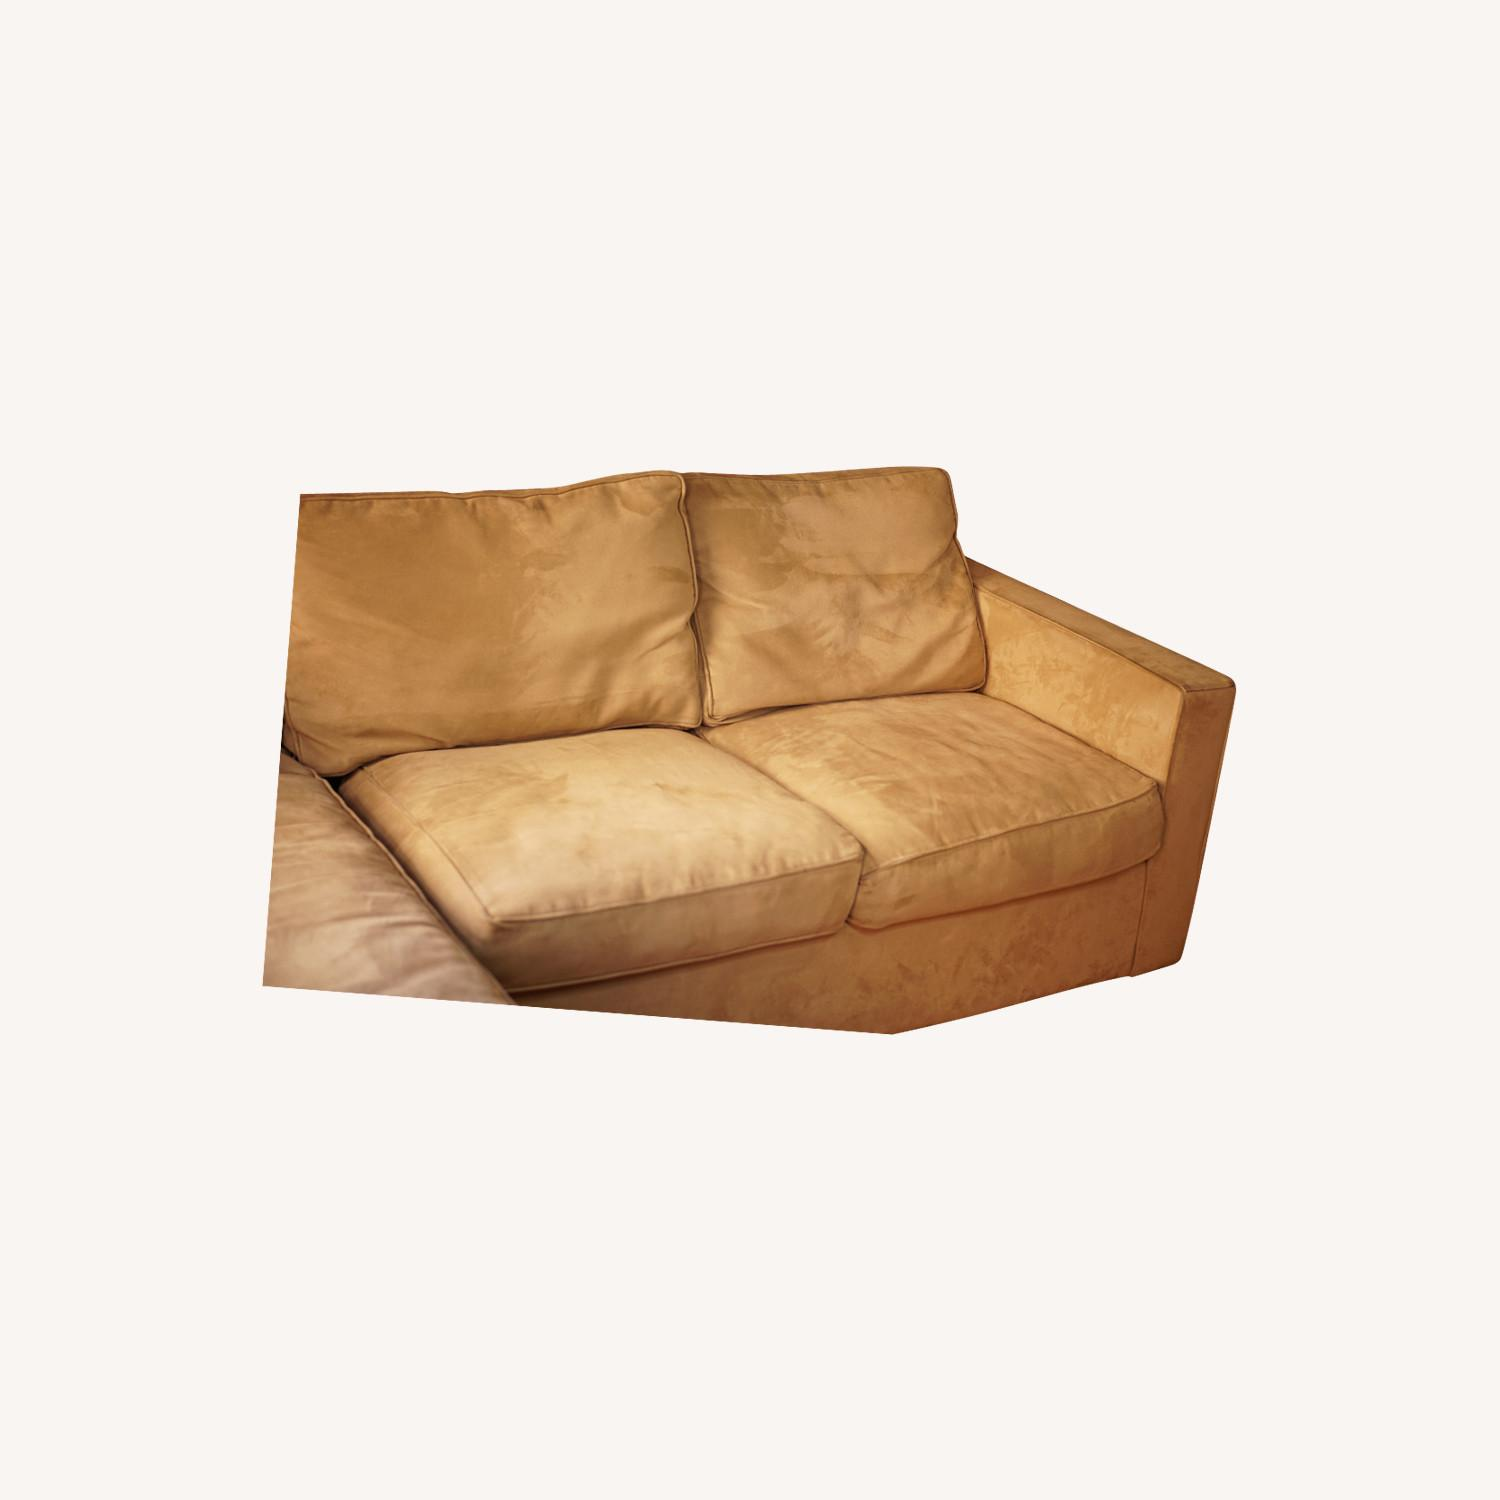 Medium Comfy Couch - image-0